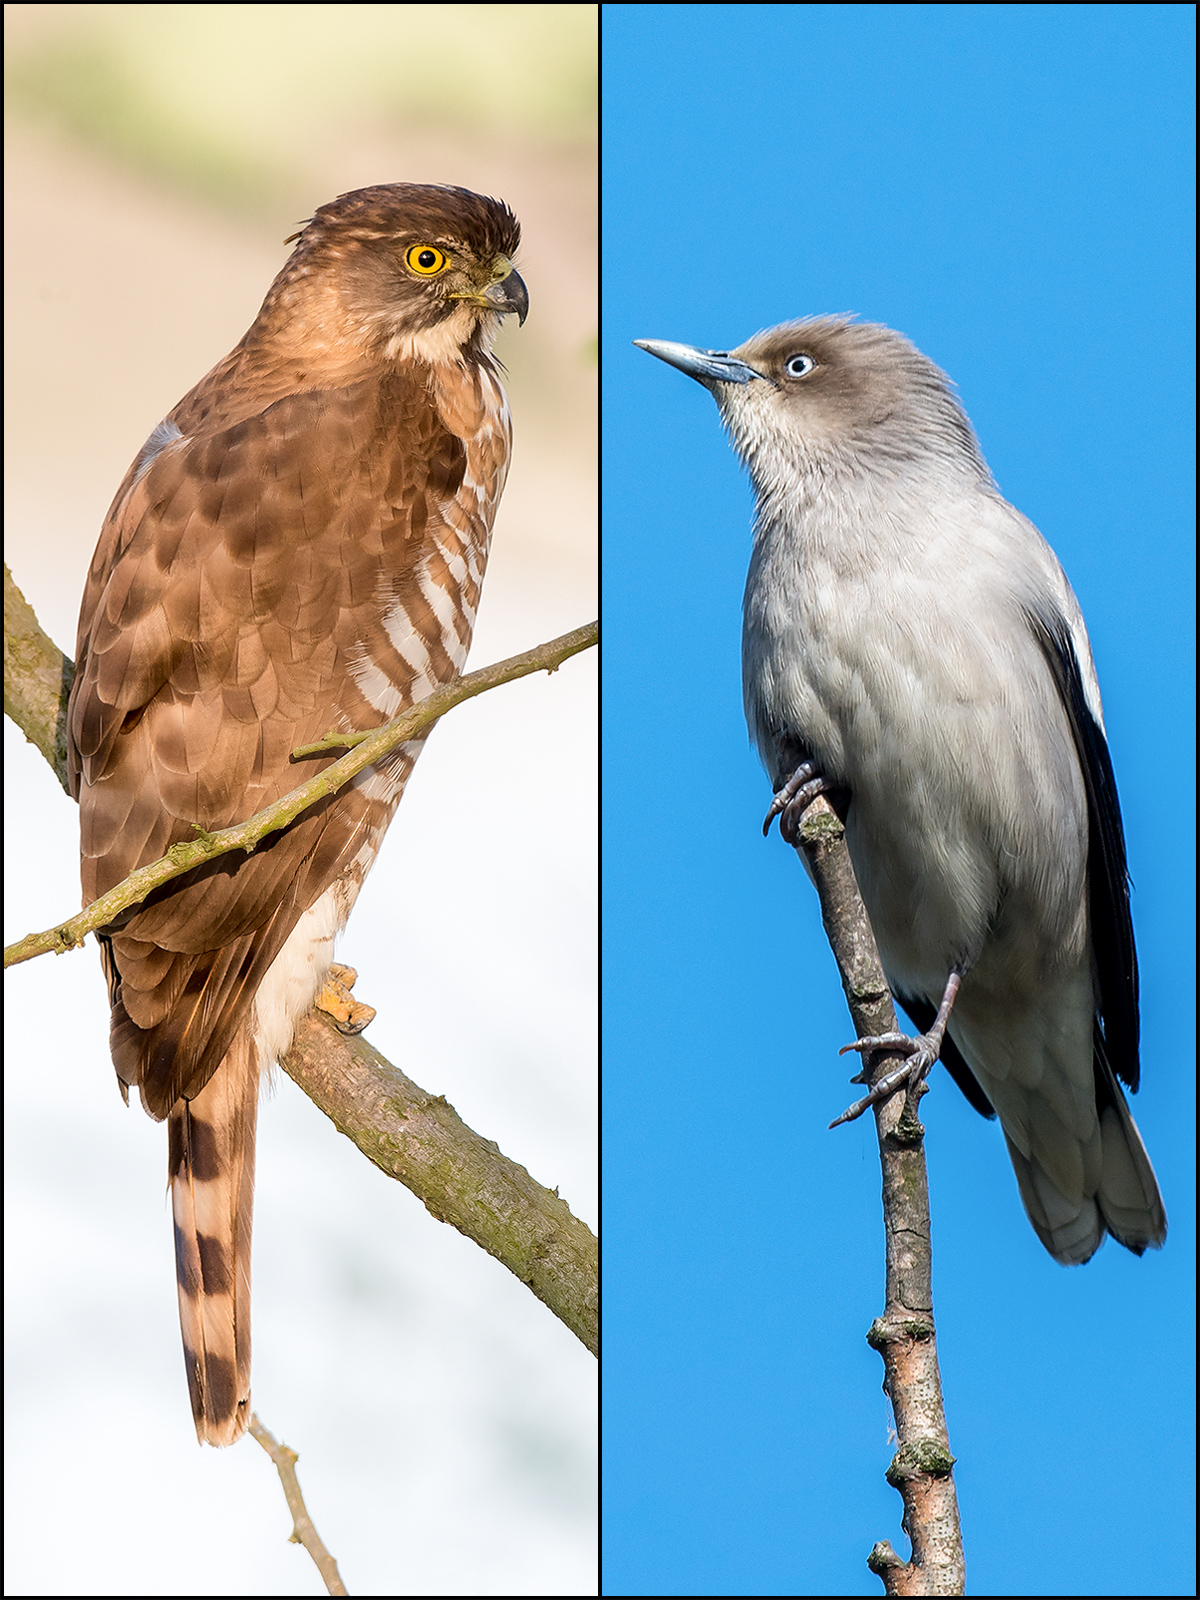 L: Crested Goshawk Accipiter trivirgatus. R: White-shouldered Starling Sturnia sinensis. Both by Kai Pflug.